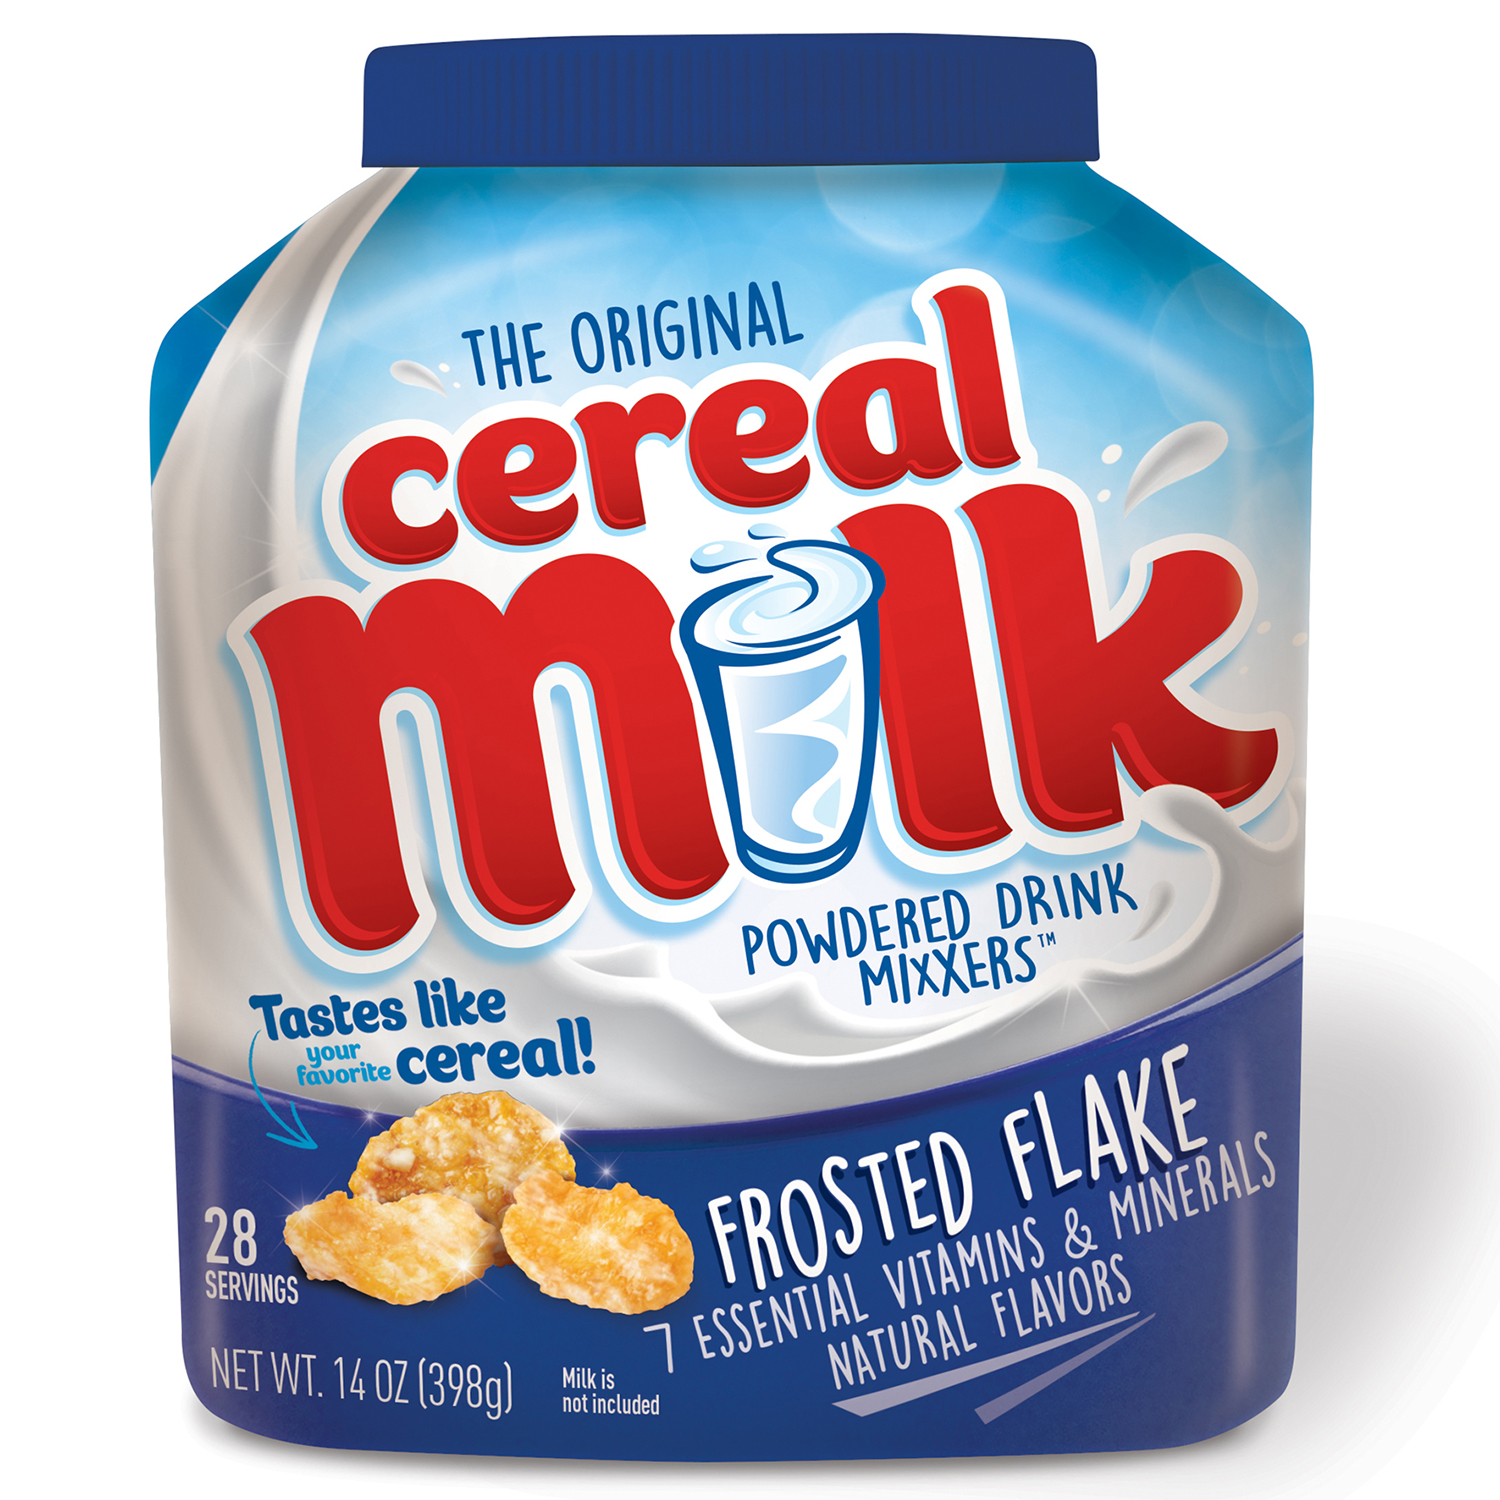 The Original Cereal Milk Mixxers Frosted Flake 14 oz